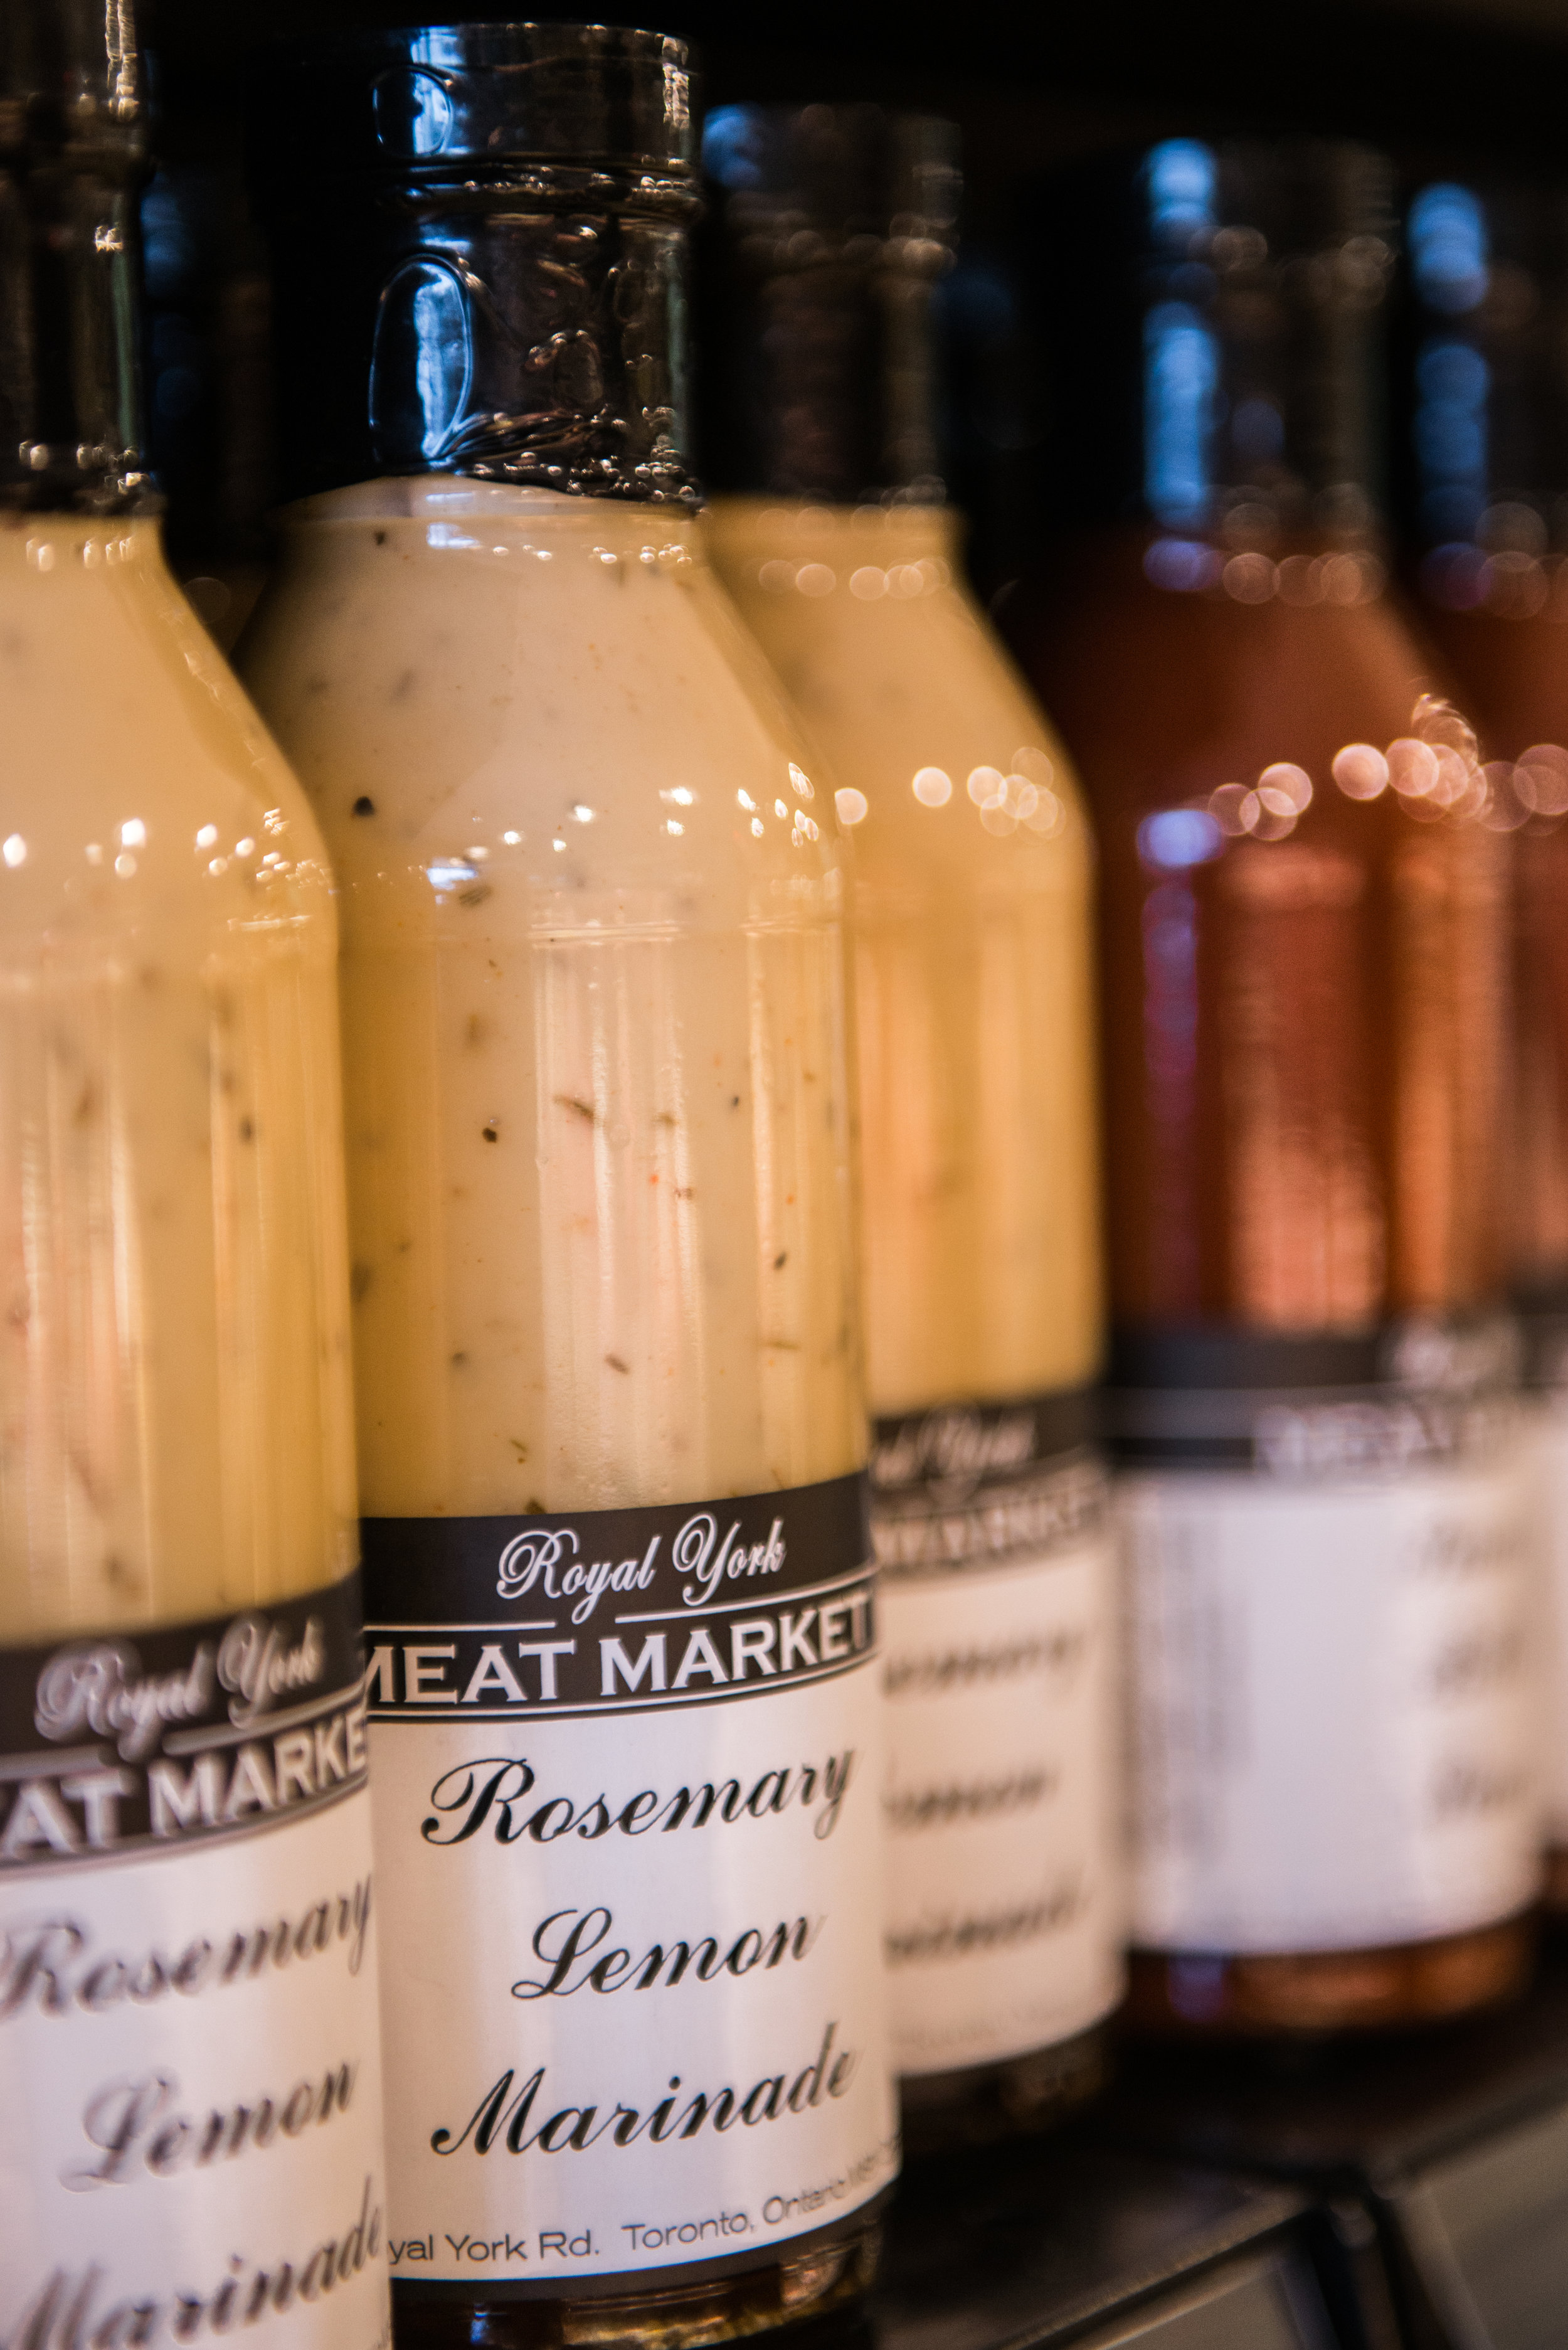 We have many name brand sauces to choose from but nothing tastes quite like something made from the heart. Why not try one of our large selection of hand made house sauces, rubs or oils. If you're on a time crunch, we'll even marinade it for you.